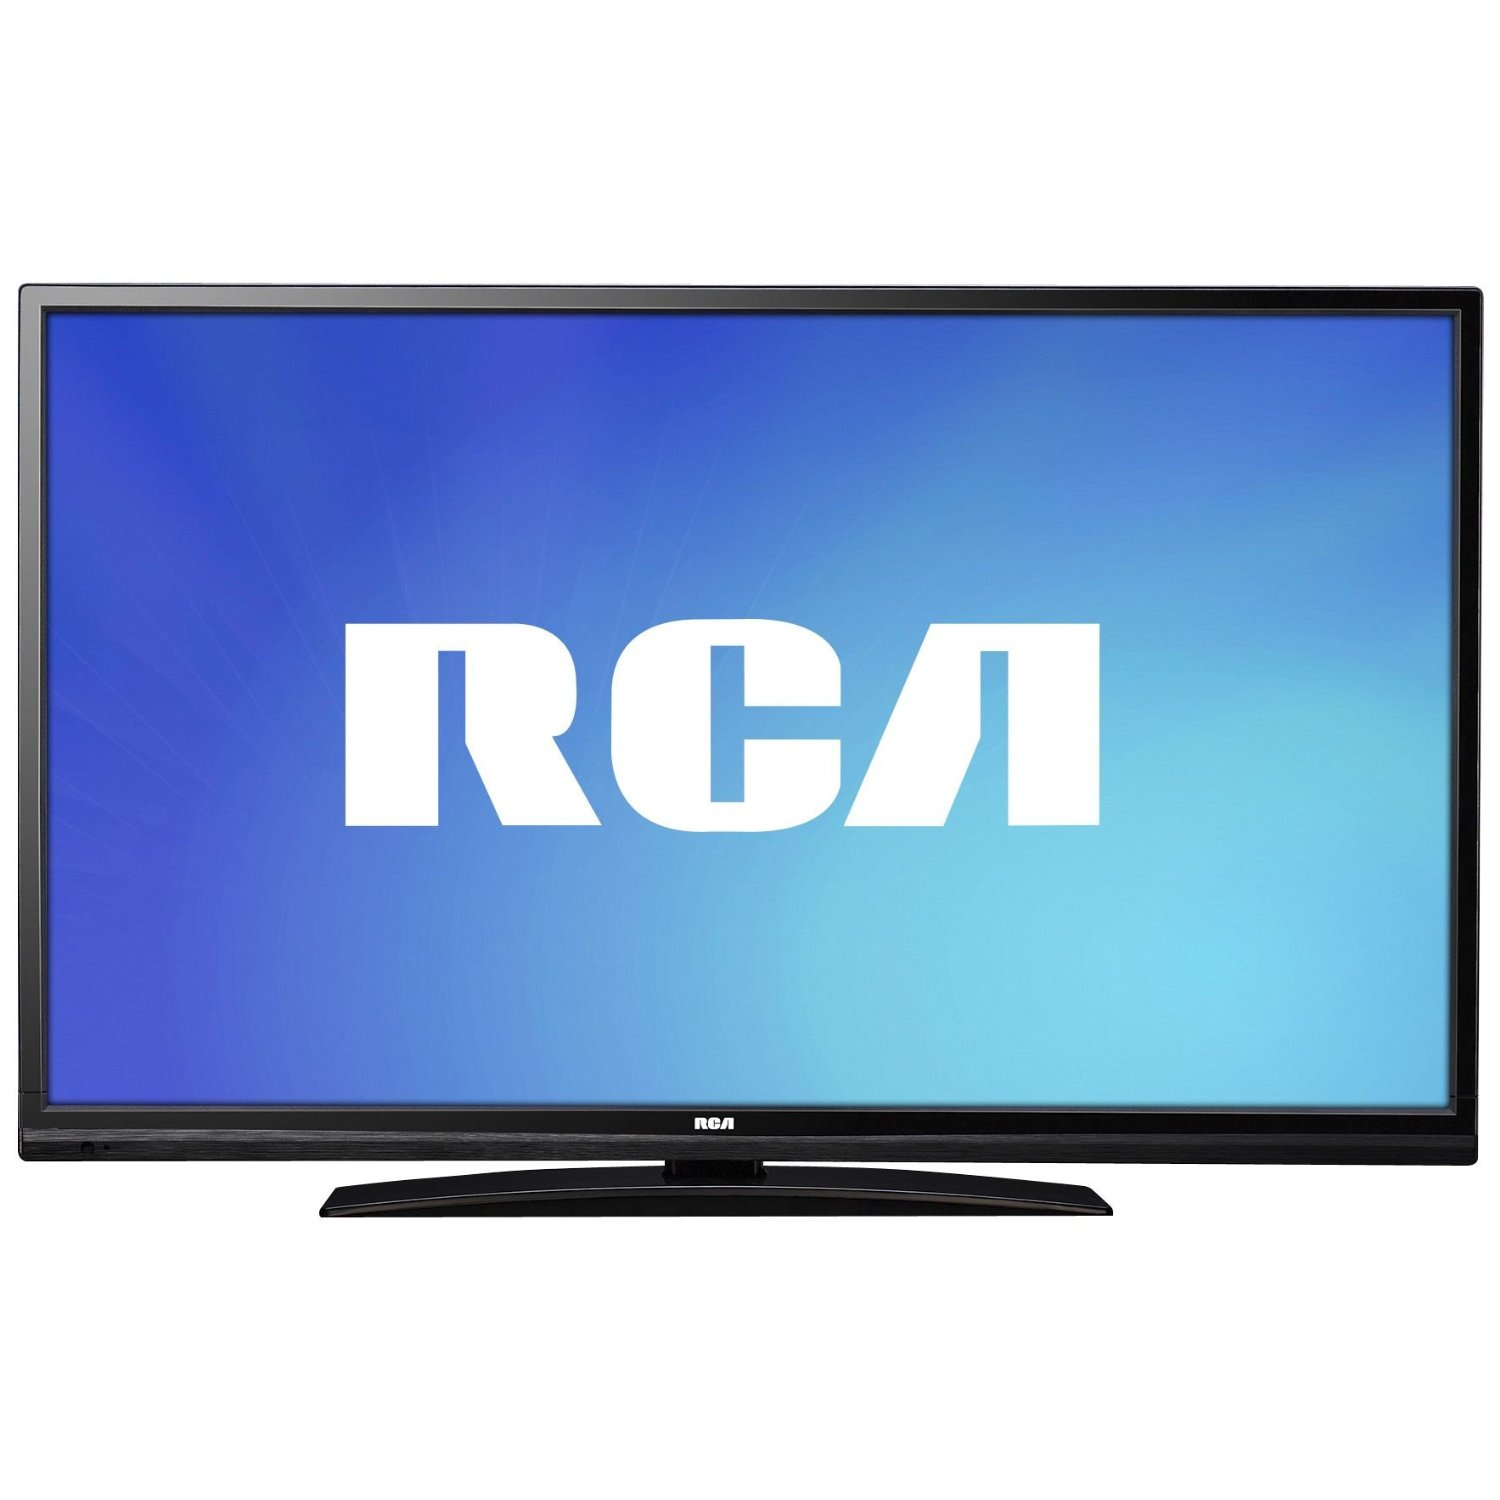 Cheap Rca Tv Hdtv, find Rca Tv Hdtv deals on line at Alibaba.com